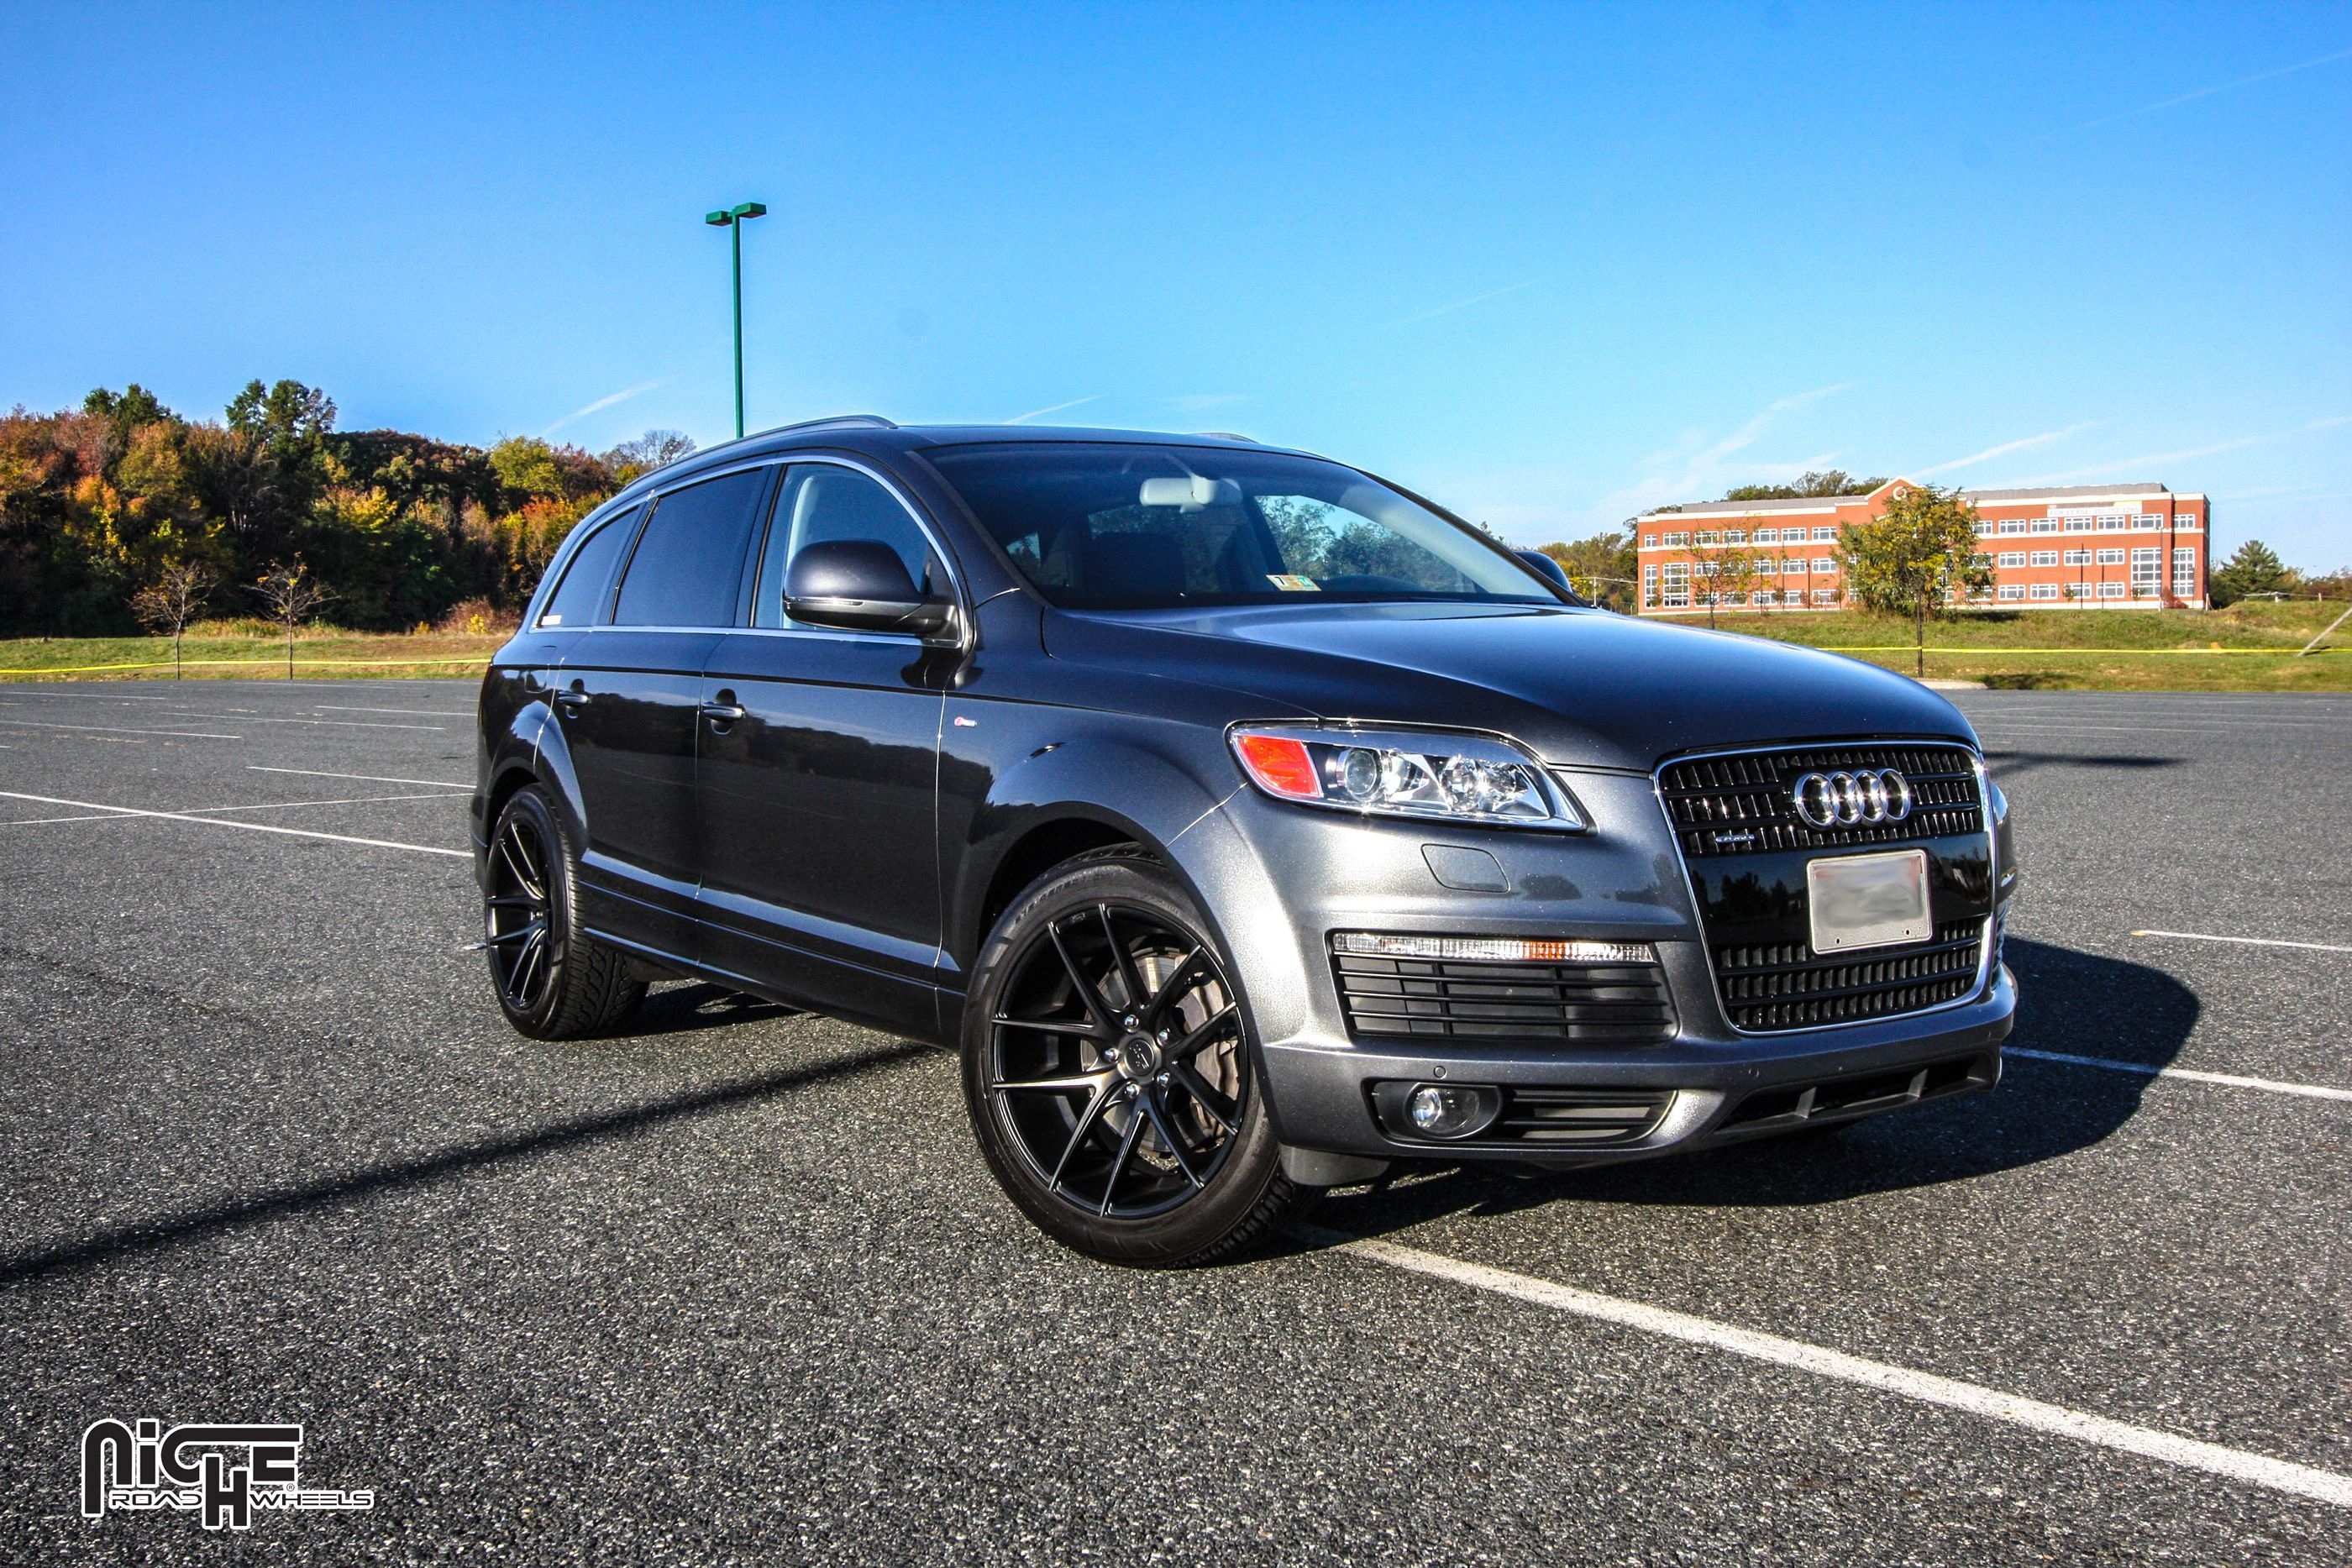 2007 audi q7 with machined black with dark tint niche sport targa wheels 20 inch targa rims. Black Bedroom Furniture Sets. Home Design Ideas